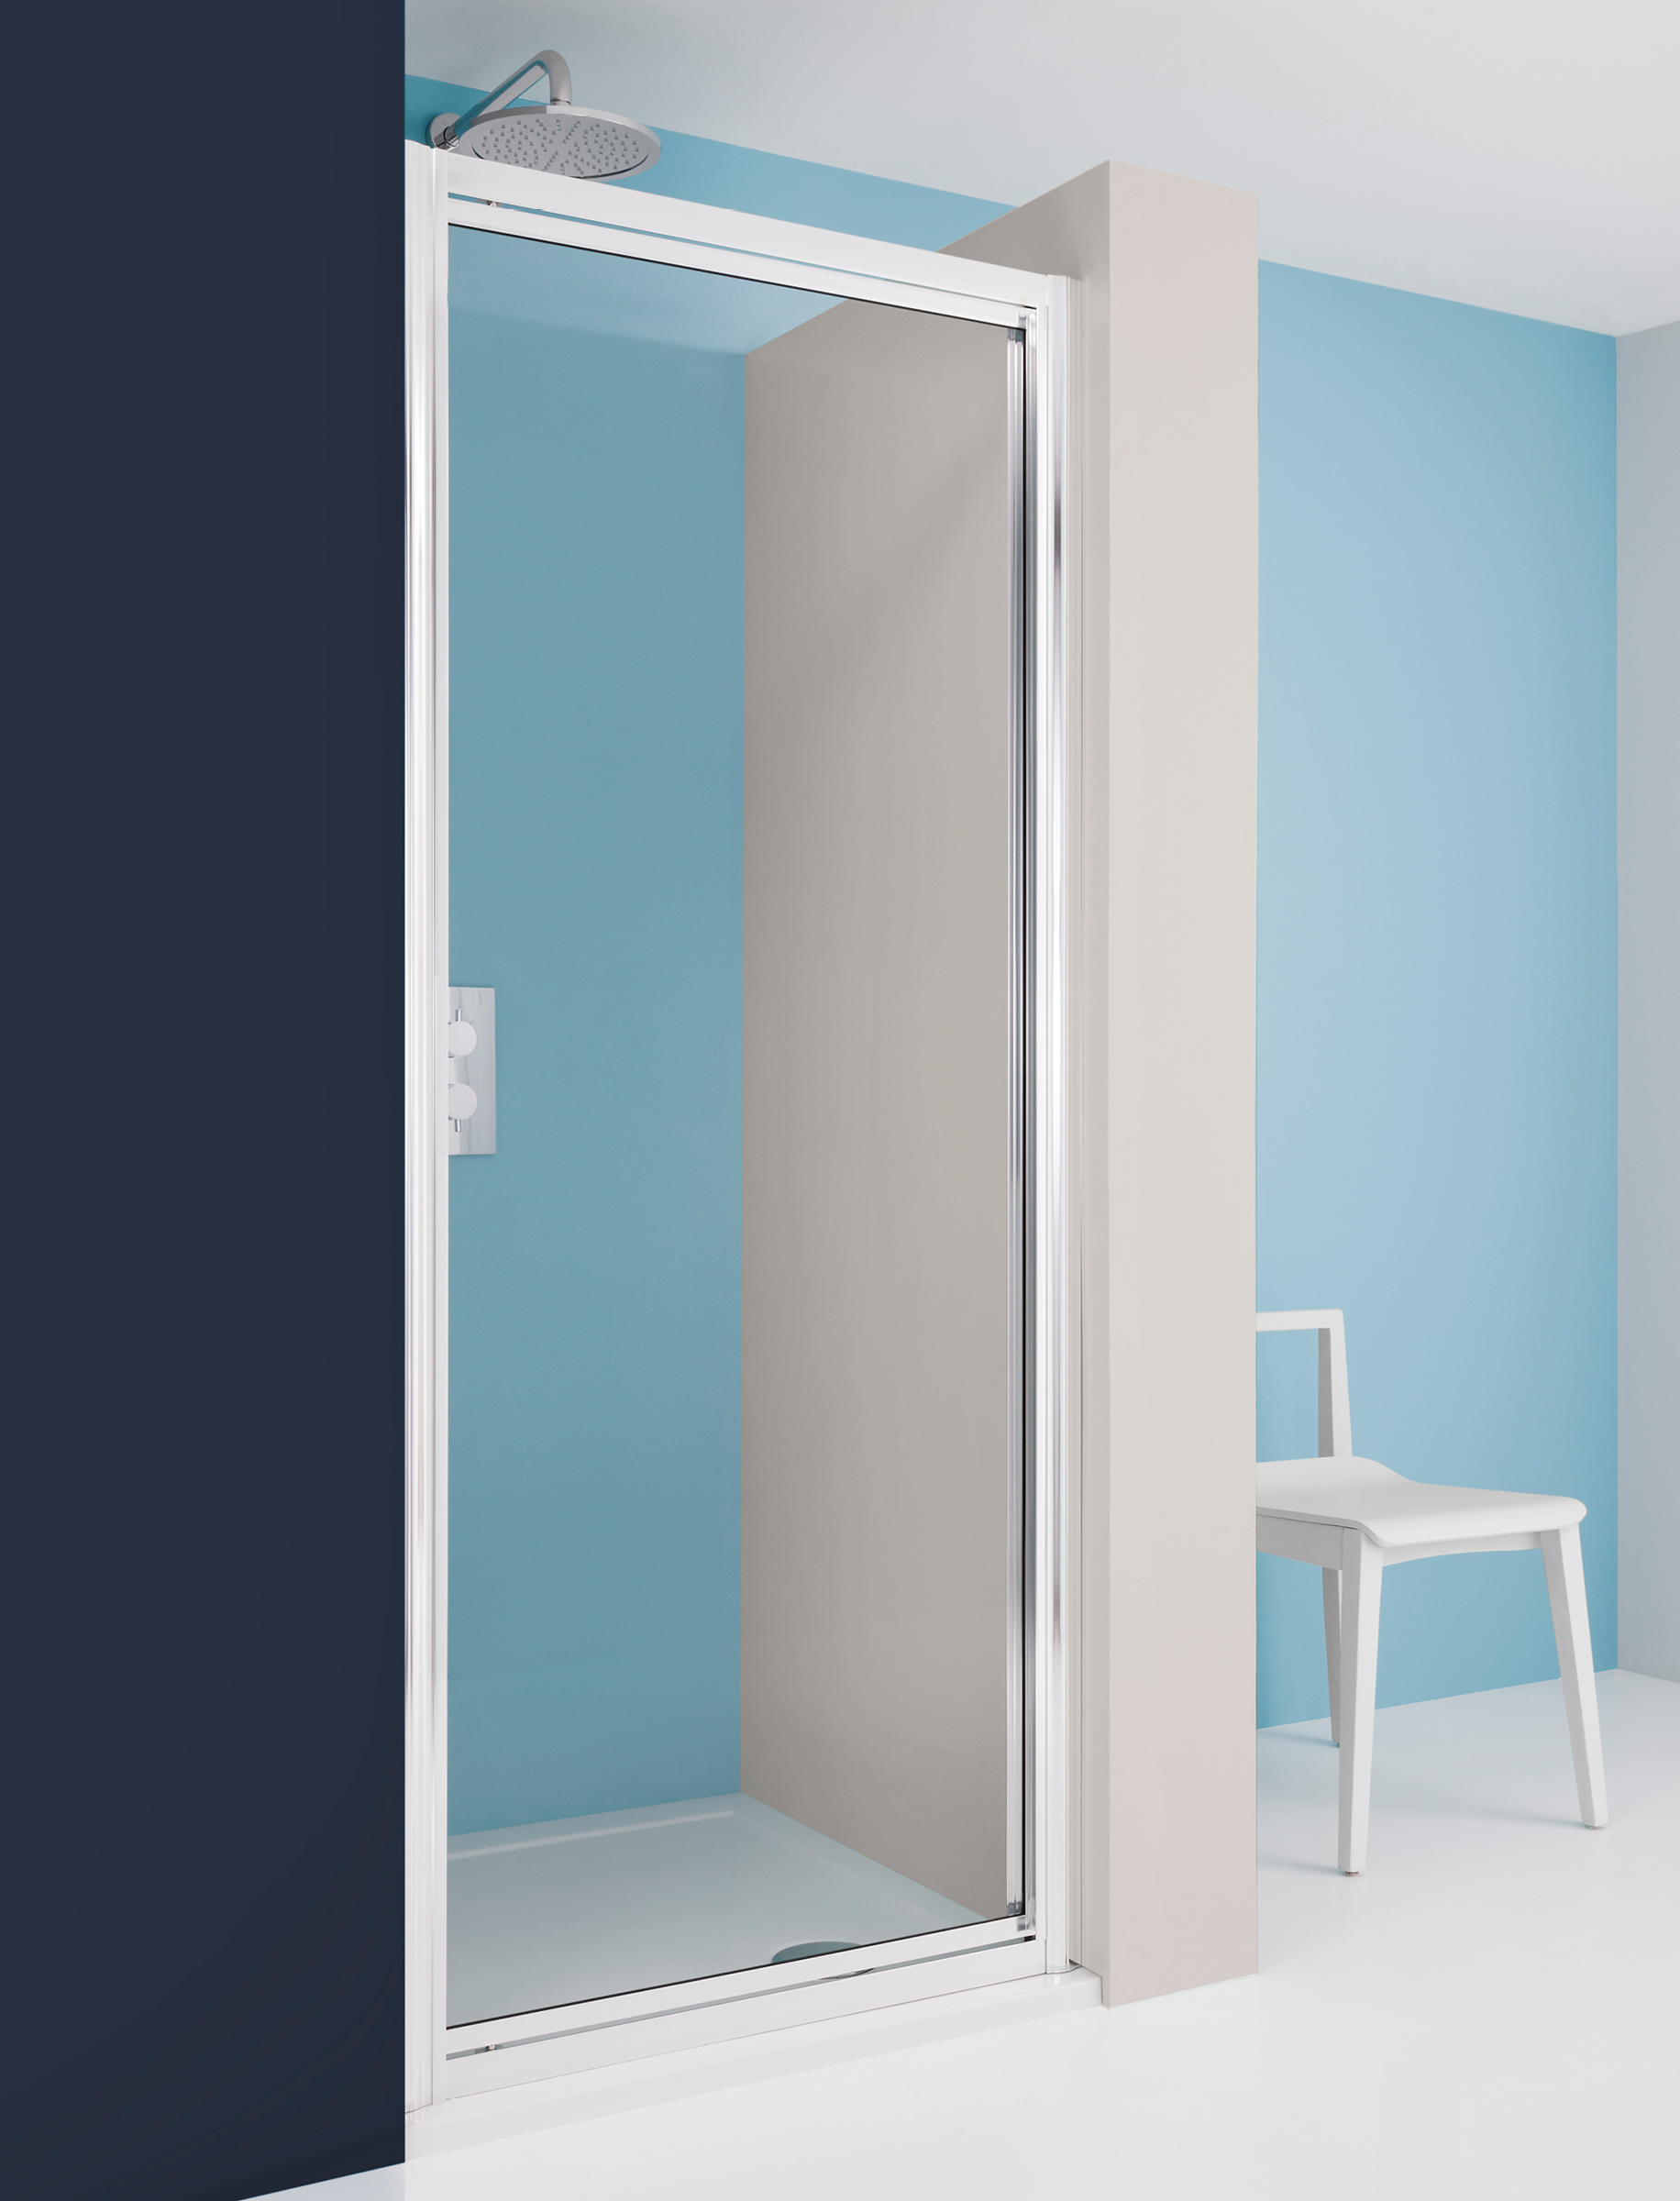 Supreme Pivot Shower Door in Pivot Door | Luxury bathrooms UK ...